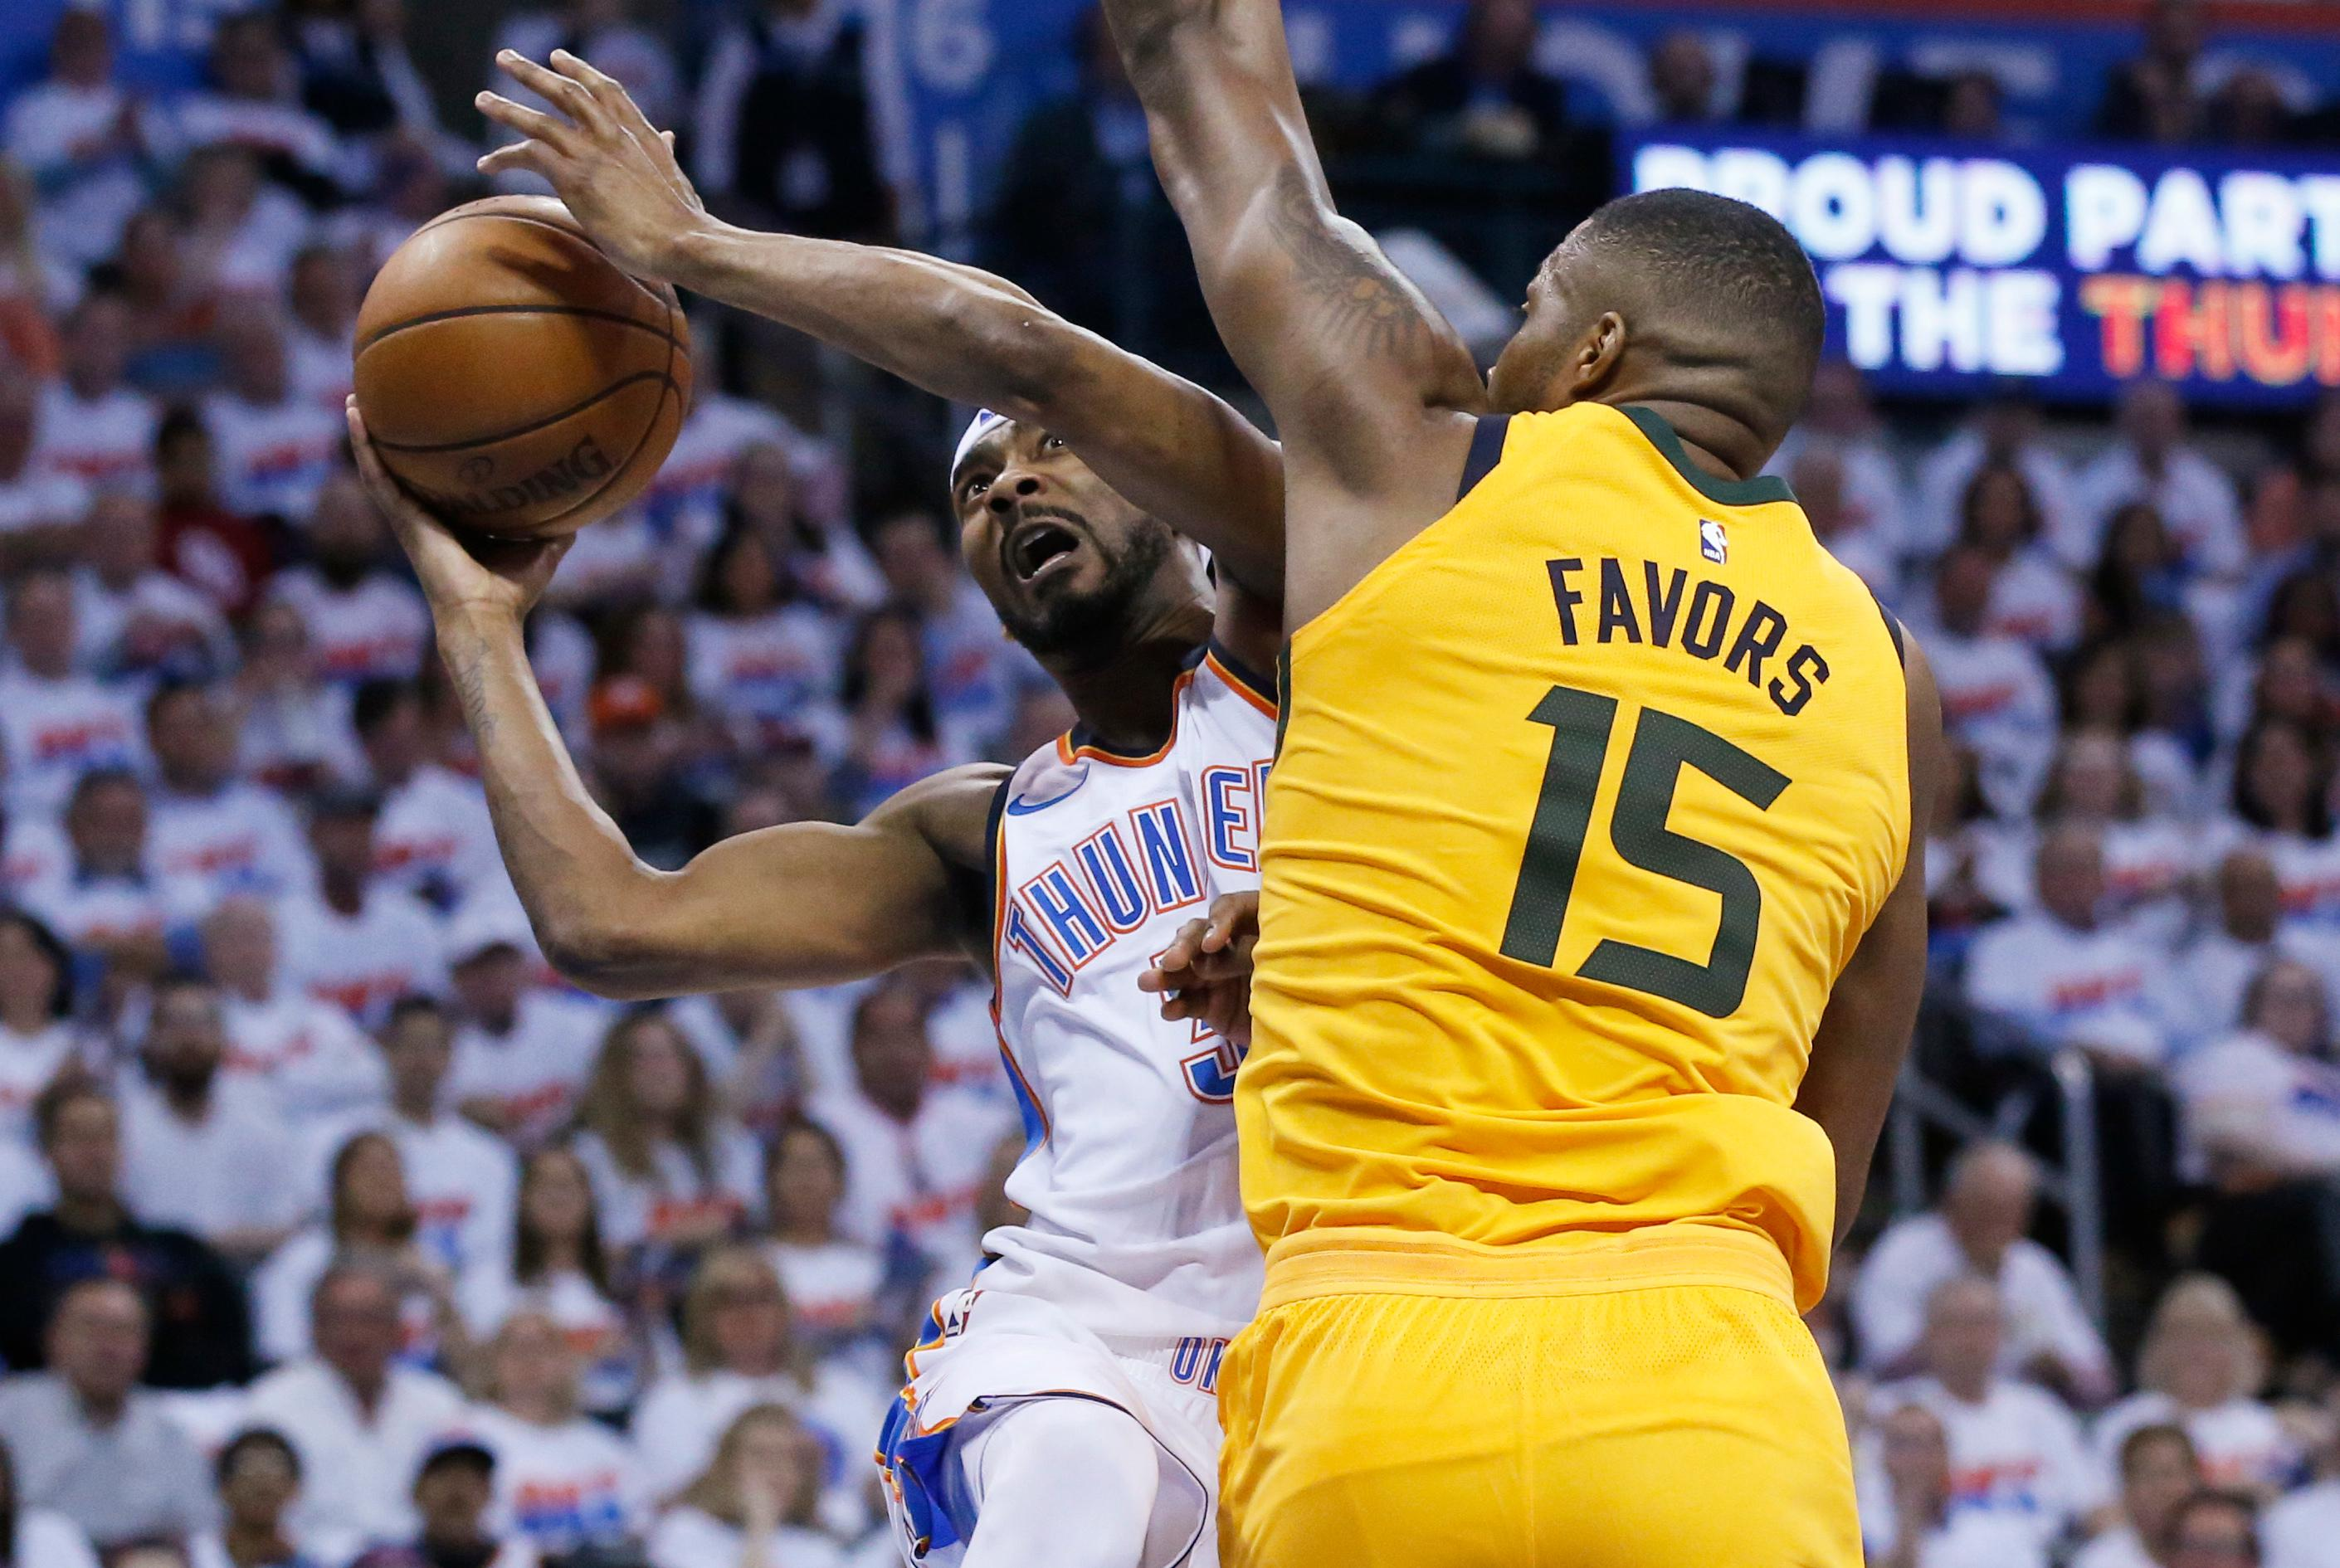 Oklahoma City Thunder forward Corey Brewer, left, shoots as Utah Jazz forward Derrick Favors (15) defends during the first half of Game 2 of an NBA basketball first-round playoff series in Oklahoma City, Wednesday, April 18, 2018. (AP Photo/Sue Ogrocki)